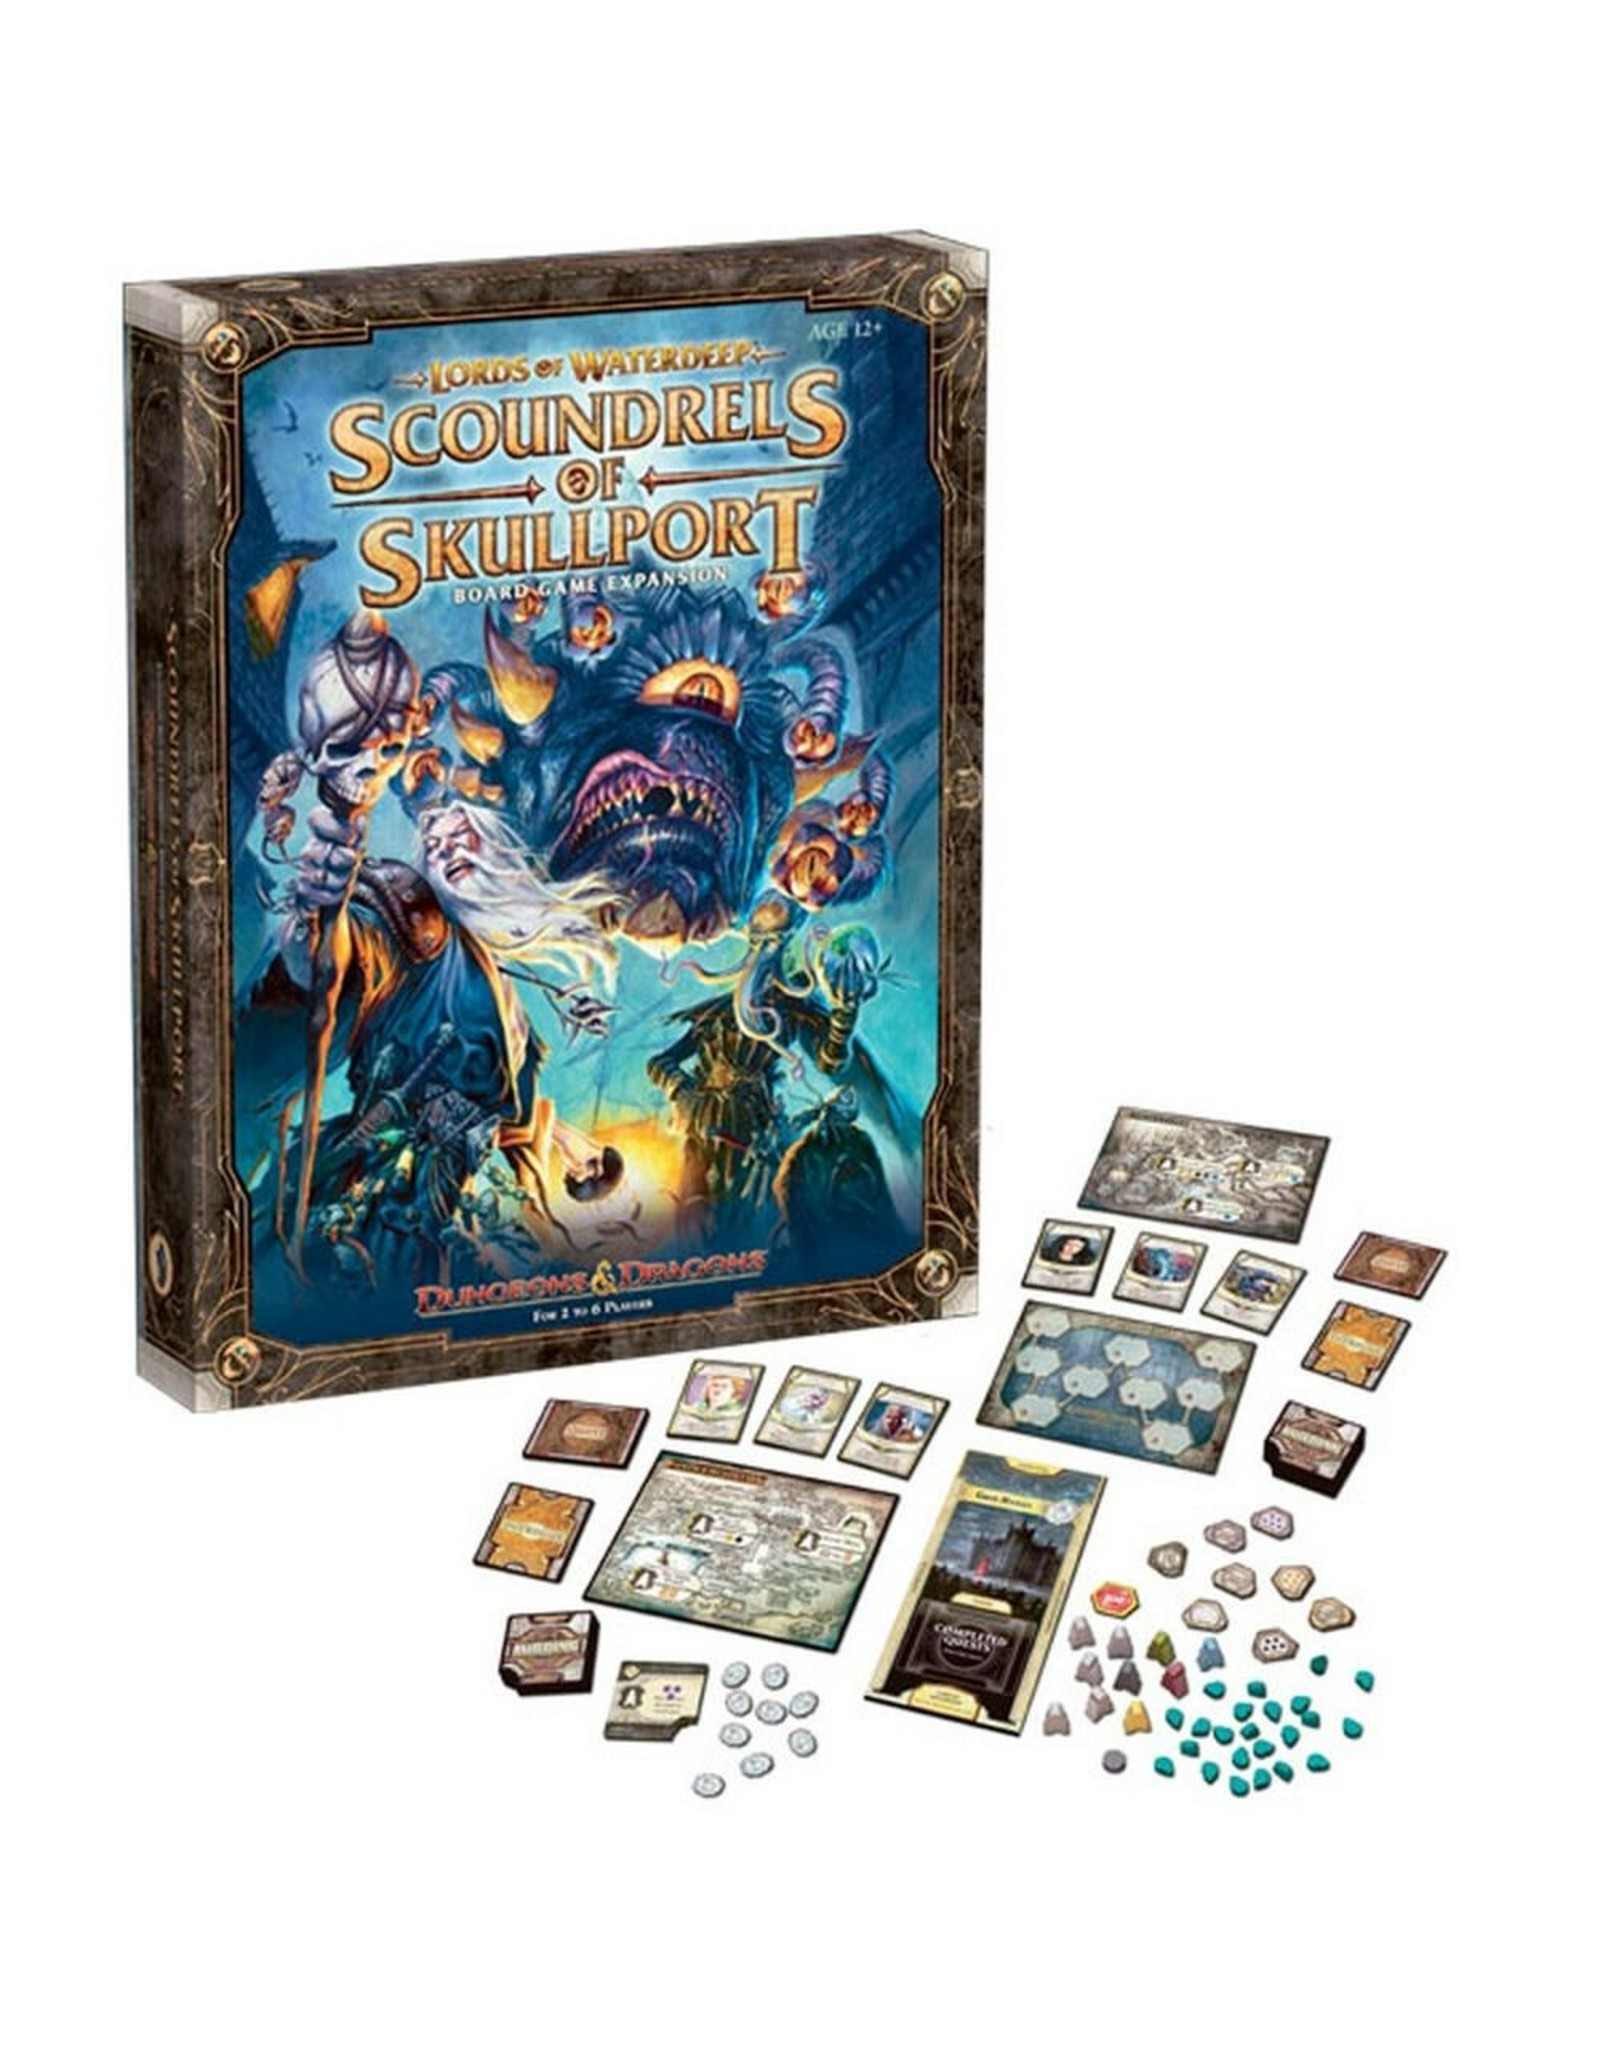 Dungeons and Dragons: Scoundrels of Skullport